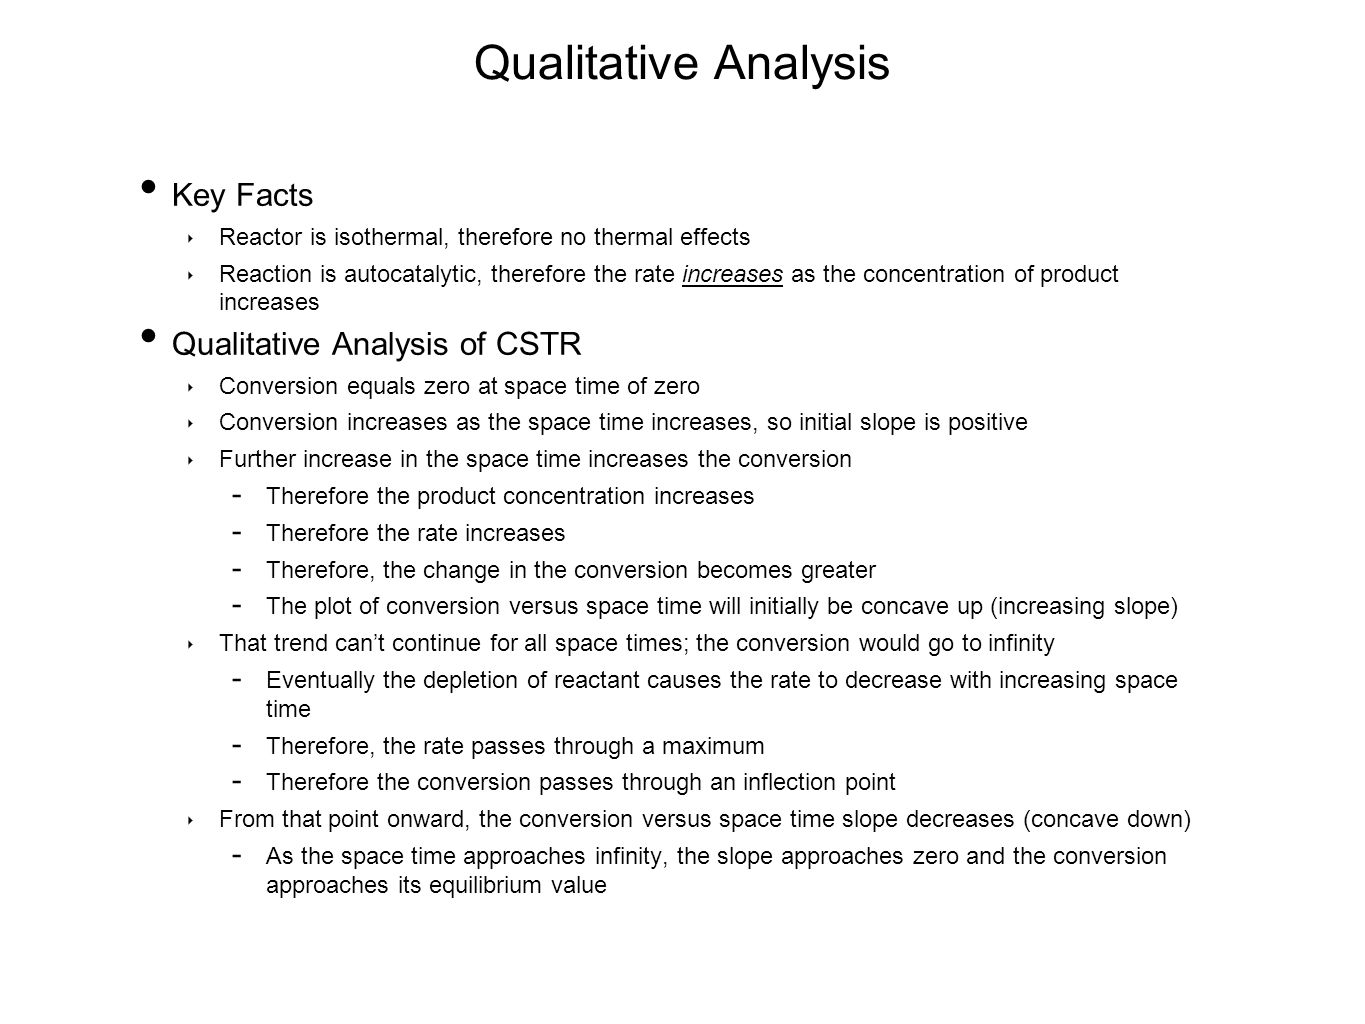 Qualitative Analysis Key Facts ‣ Reactor is isothermal, therefore no thermal effects ‣ Reaction is autocatalytic, therefore the rate increases as the concentration of product increases Qualitative Analysis of CSTR ‣ Conversion equals zero at space time of zero ‣ Conversion increases as the space time increases, so initial slope is positive ‣ Further increase in the space time increases the conversion  Therefore the product concentration increases  Therefore the rate increases  Therefore, the change in the conversion becomes greater  The plot of conversion versus space time will initially be concave up (increasing slope) ‣ That trend can't continue for all space times; the conversion would go to infinity  Eventually the depletion of reactant causes the rate to decrease with increasing space time  Therefore, the rate passes through a maximum  Therefore the conversion passes through an inflection point ‣ From that point onward, the conversion versus space time slope decreases (concave down)  As the space time approaches infinity, the slope approaches zero and the conversion approaches its equilibrium value